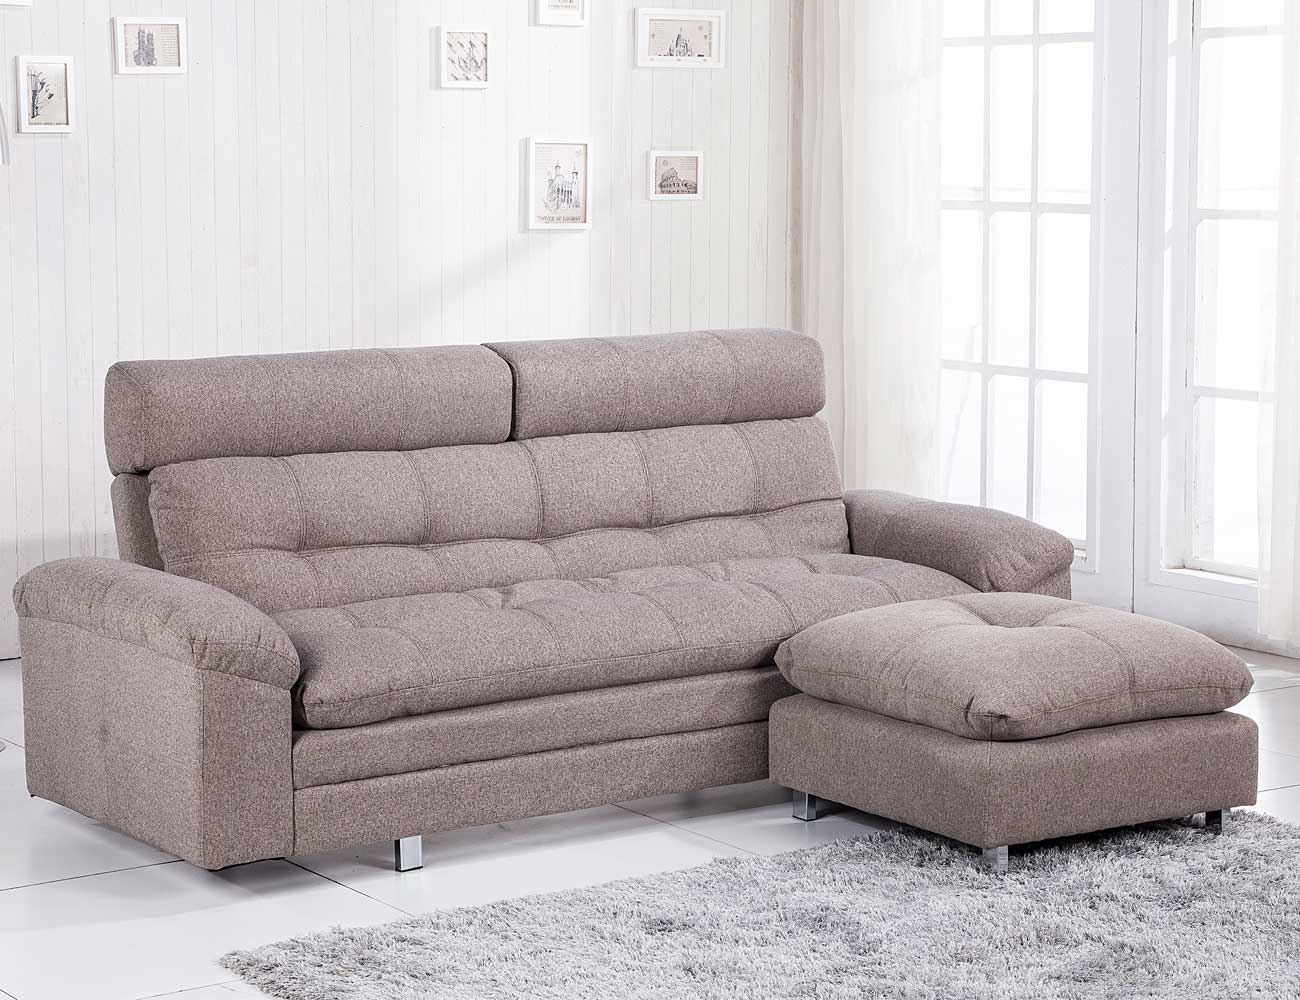 Sofa cama chaiselongue elegance moka 1